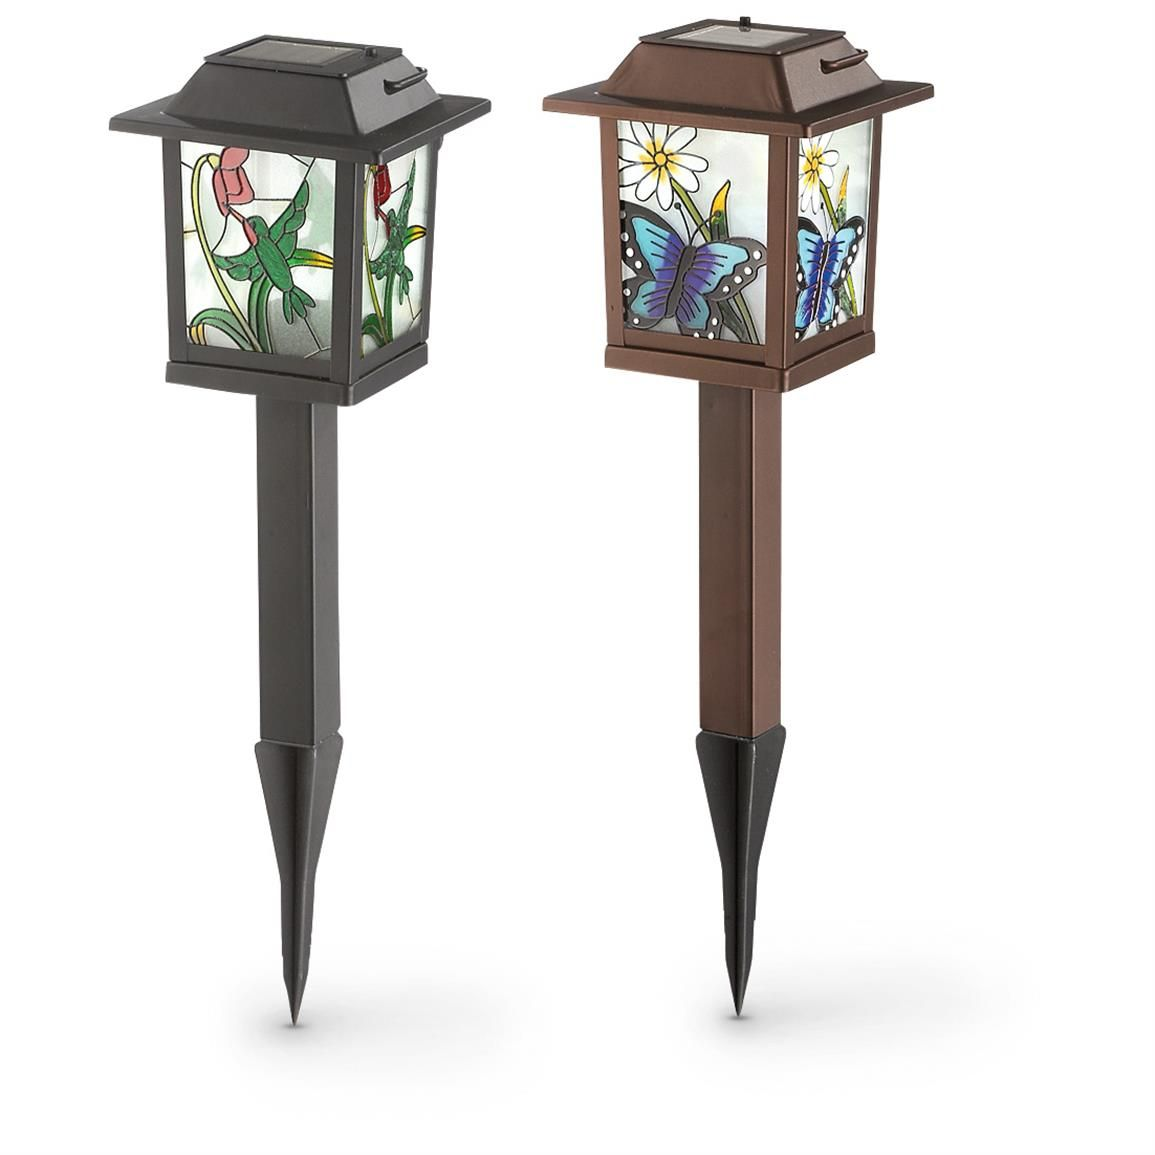 2 Stained Gl Look Solar Lanterns Add A Gorgeous Glow To Your Patio Garden Or Driveway